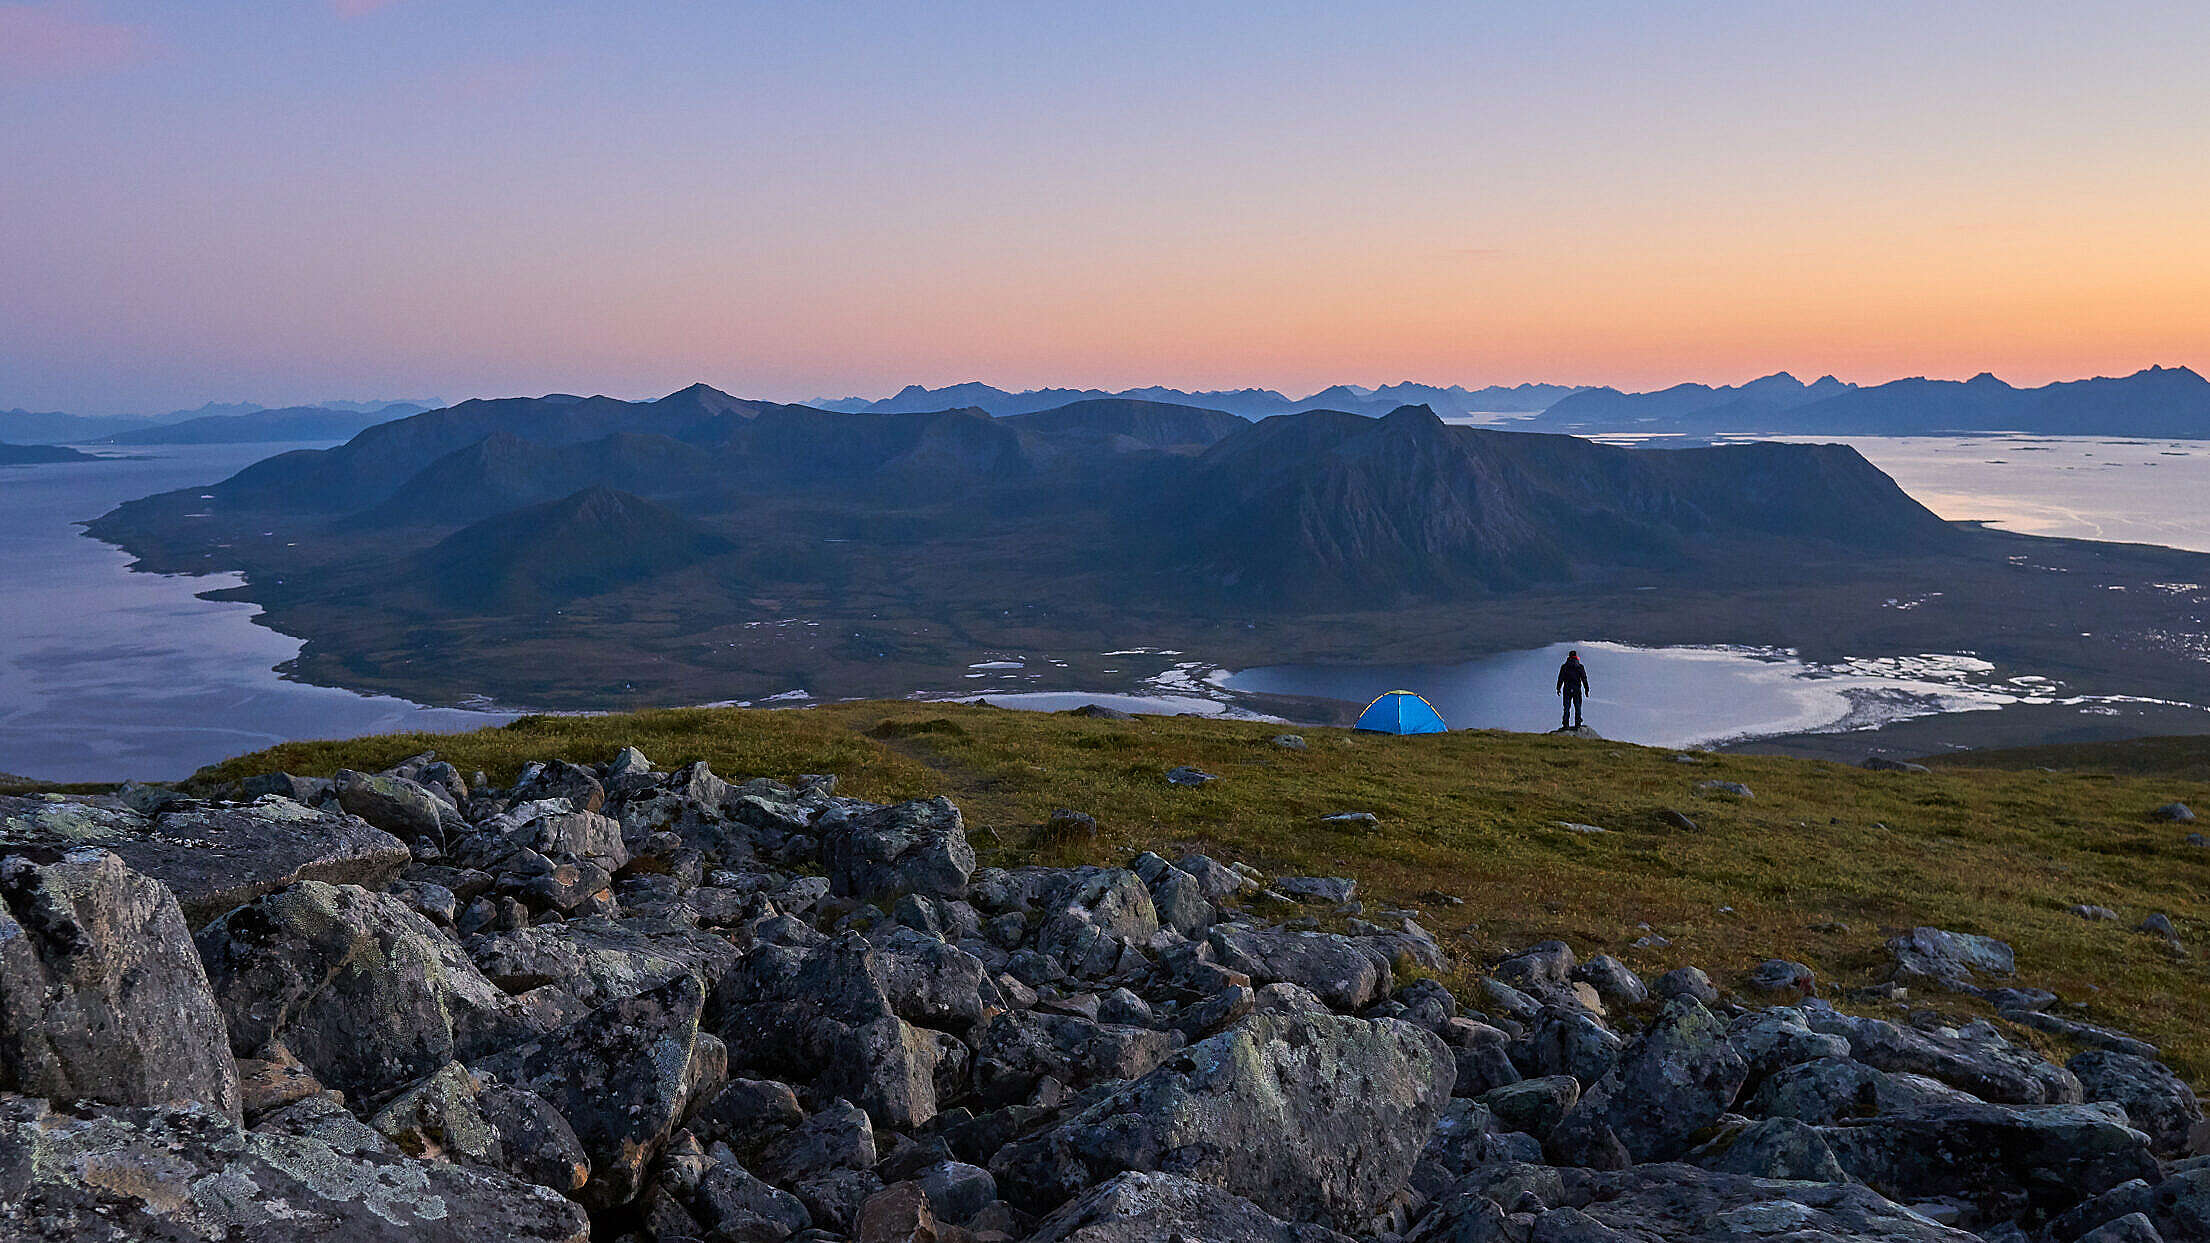 Camping in the Mountains of Northern Norway Free Stock Photo